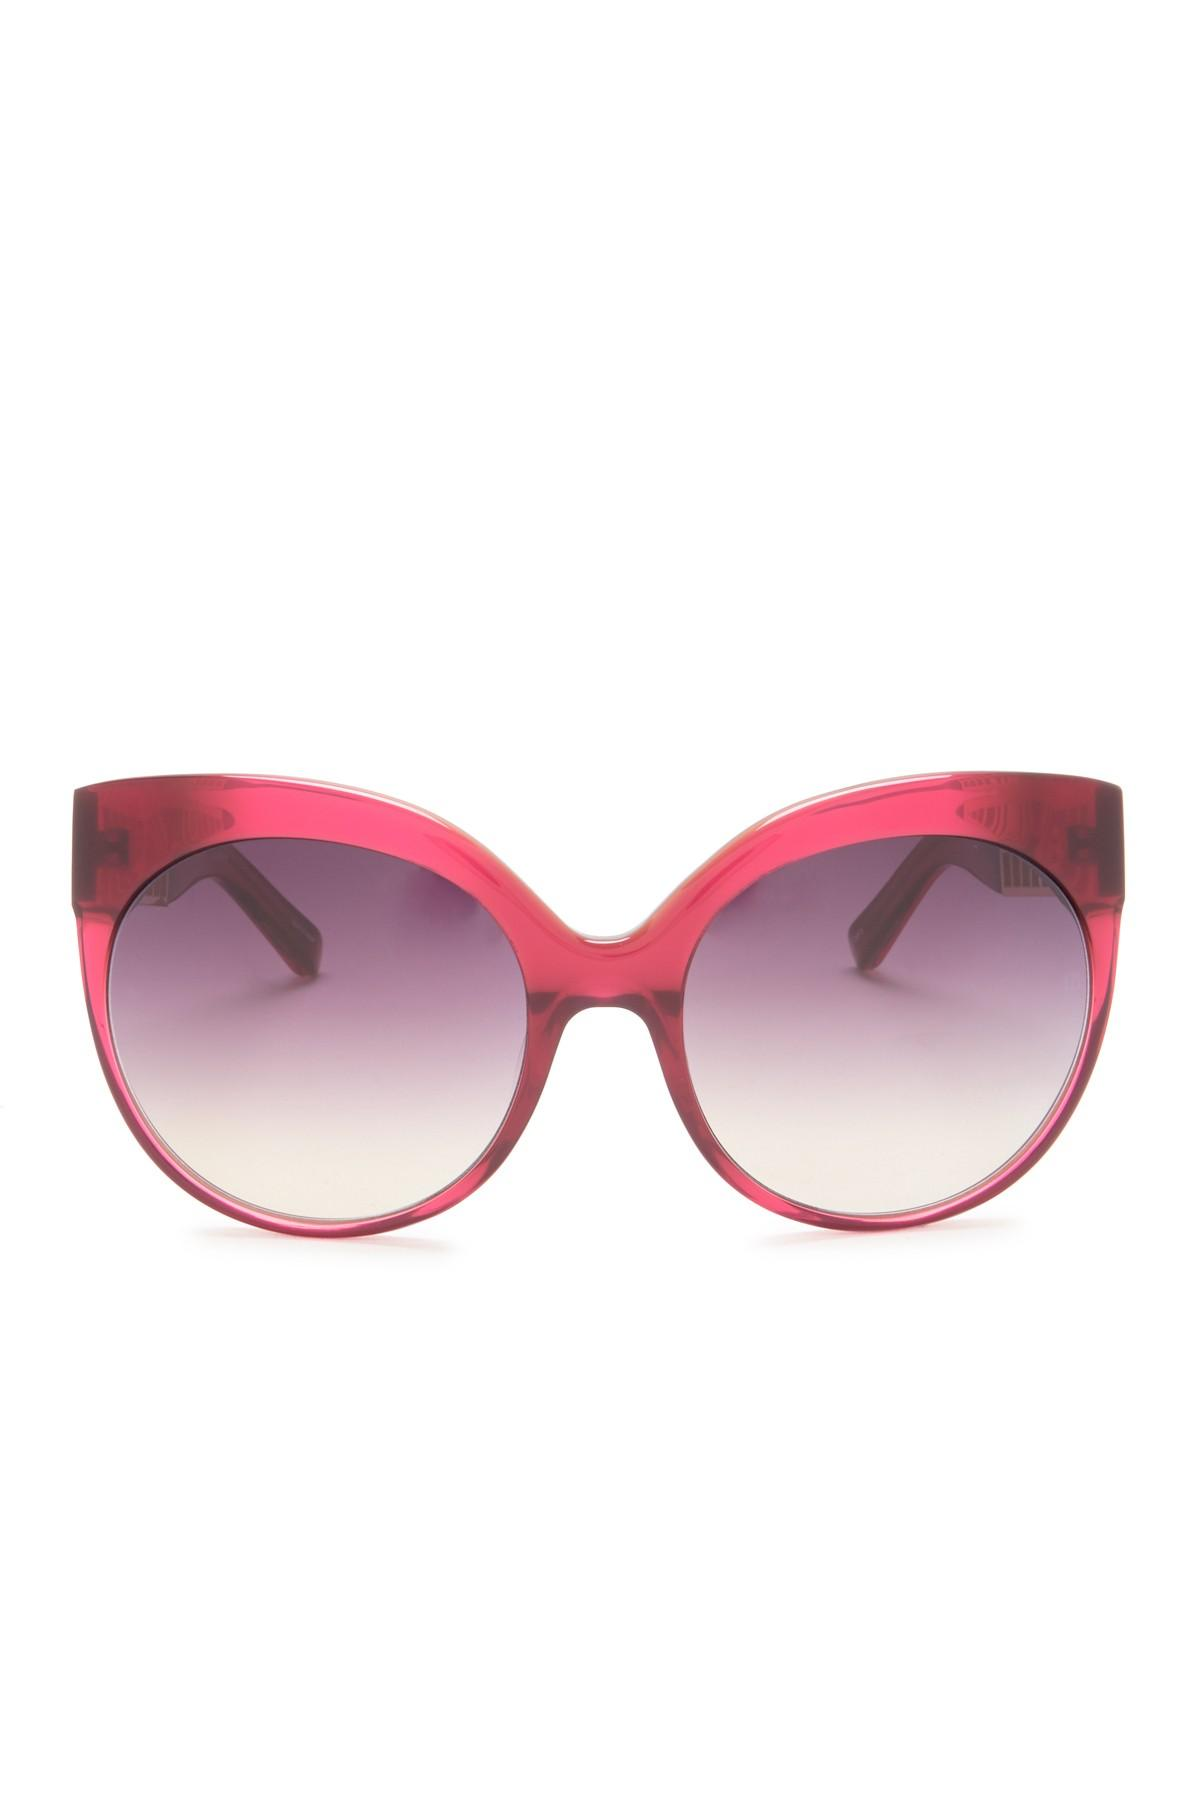 6a83a51c614 Linda Farrow - Pink 59mm Cat Eye Sunglasses - Lyst. View fullscreen